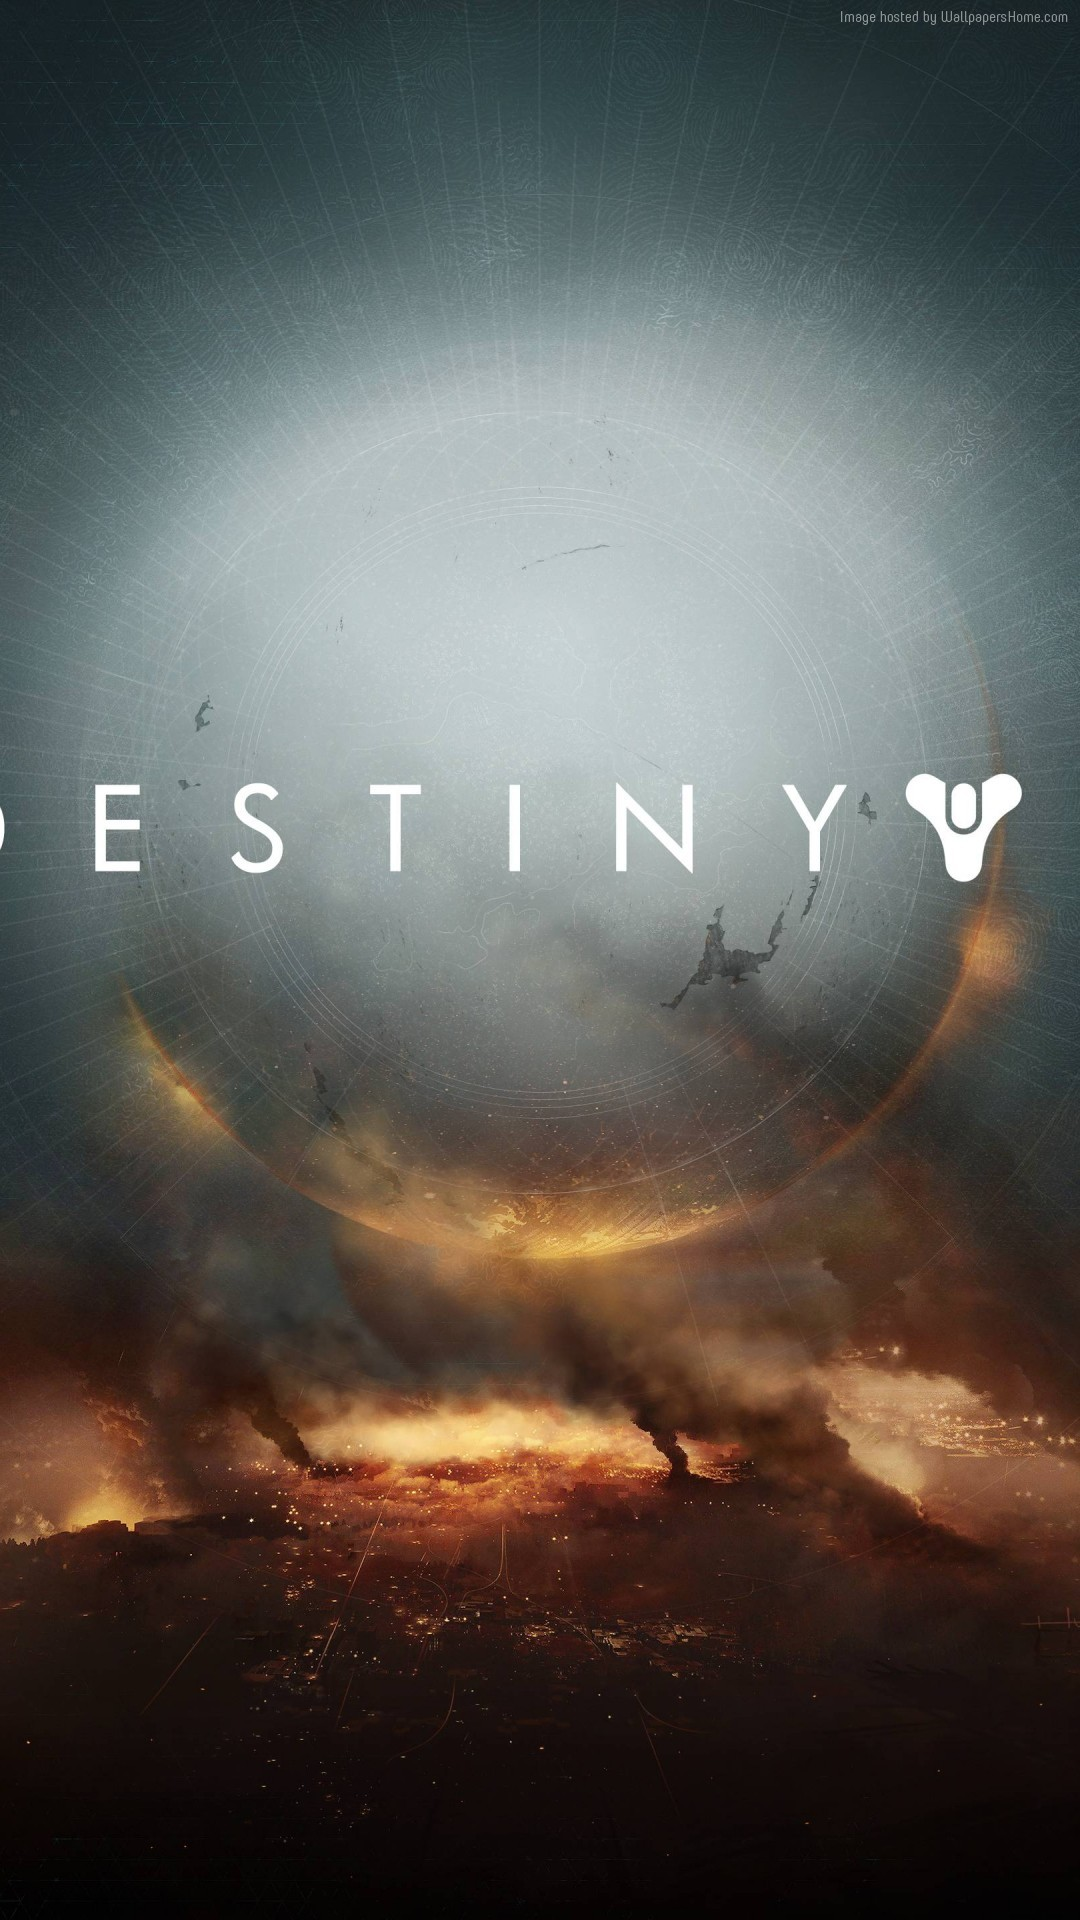 1080x1920 Hot Destiny 2 rumours point to PC release, major reboot | VG247